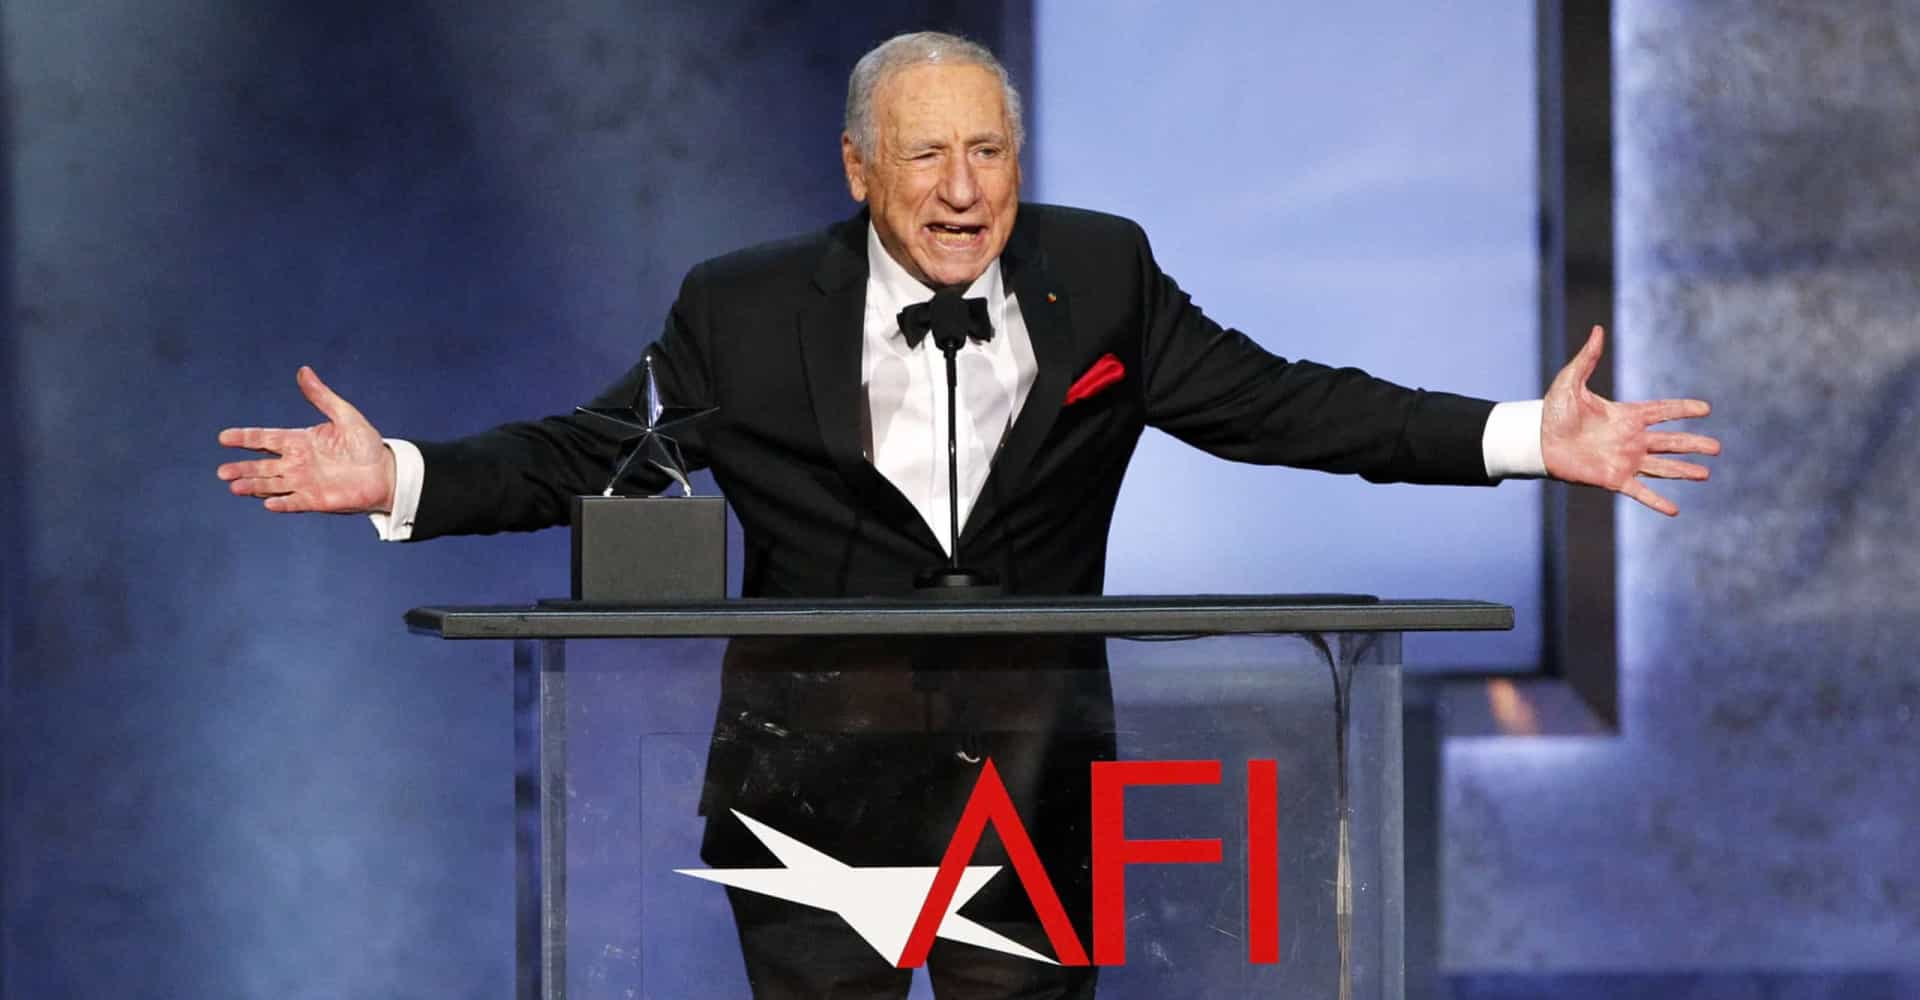 Mel Brooks: Prince of parody, master of mirth